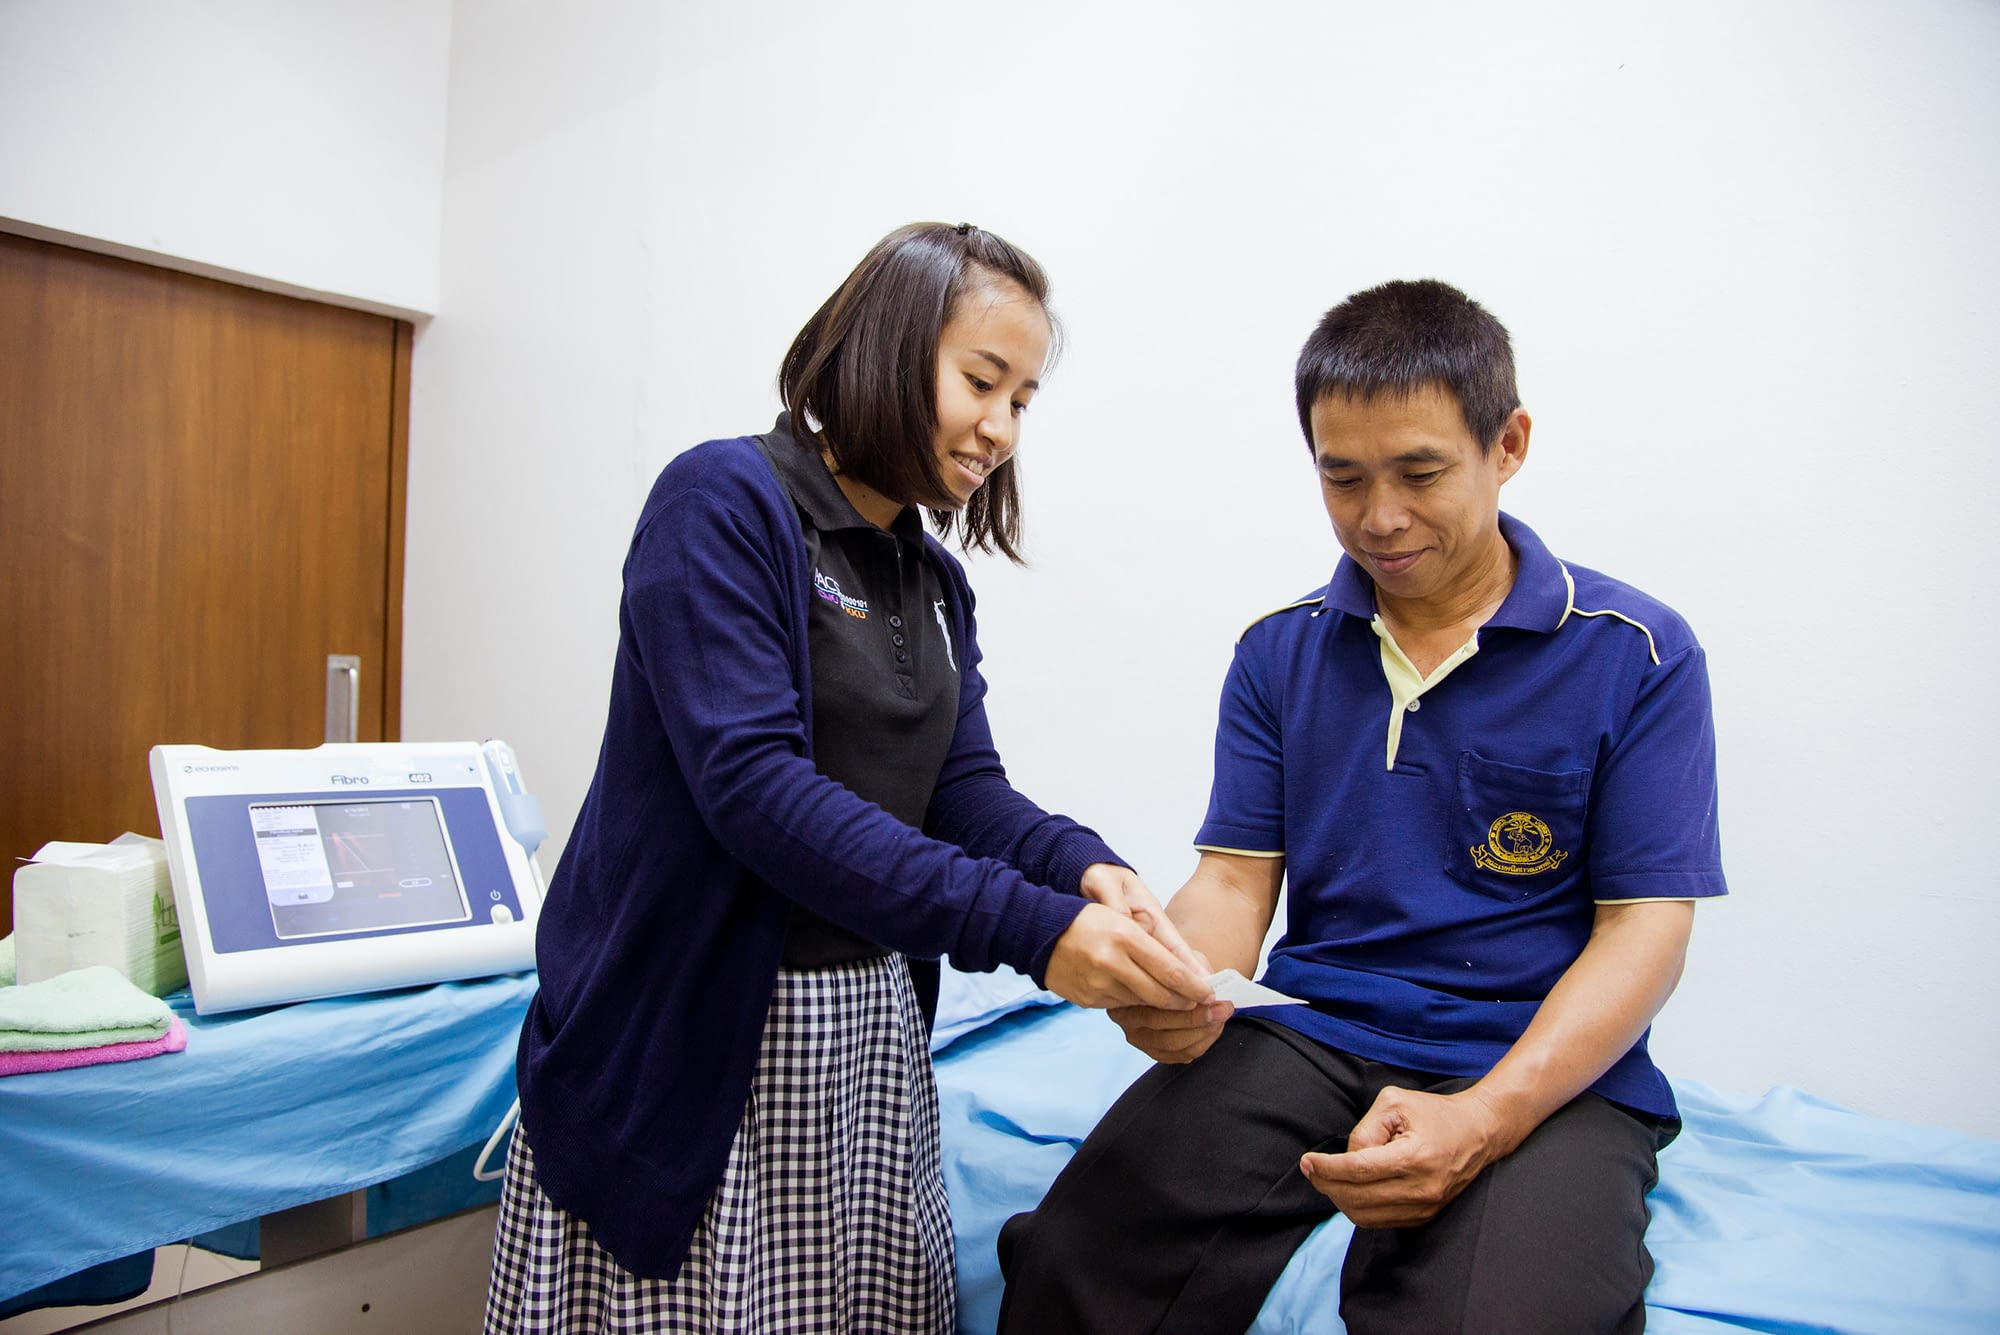 Healthcare worker with a patient in hospital setting